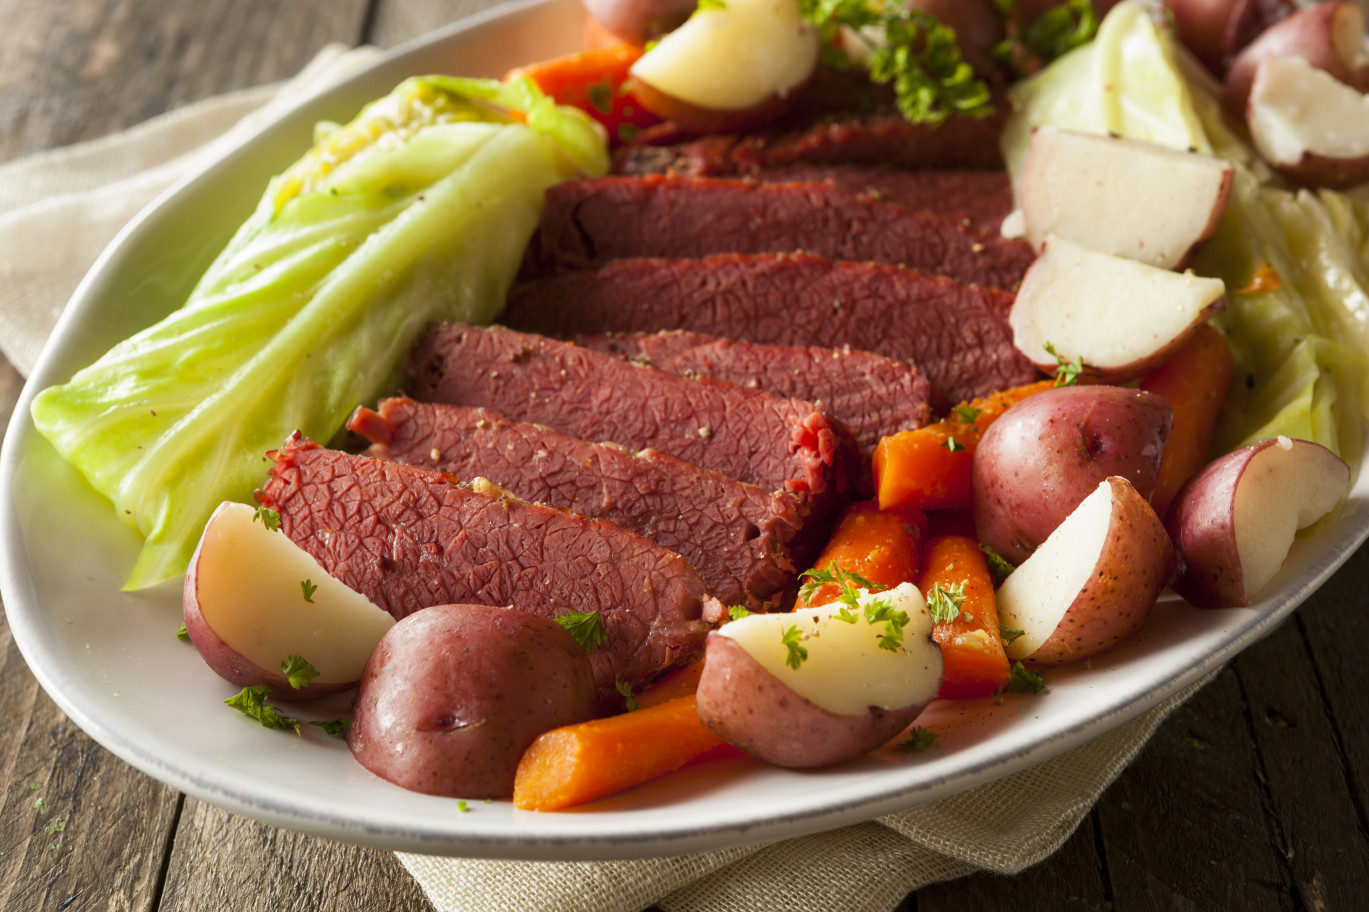 Corned Beef And Cabbage  Sumptuous Corned Beef & Cabbage Recipe Centsably Creative